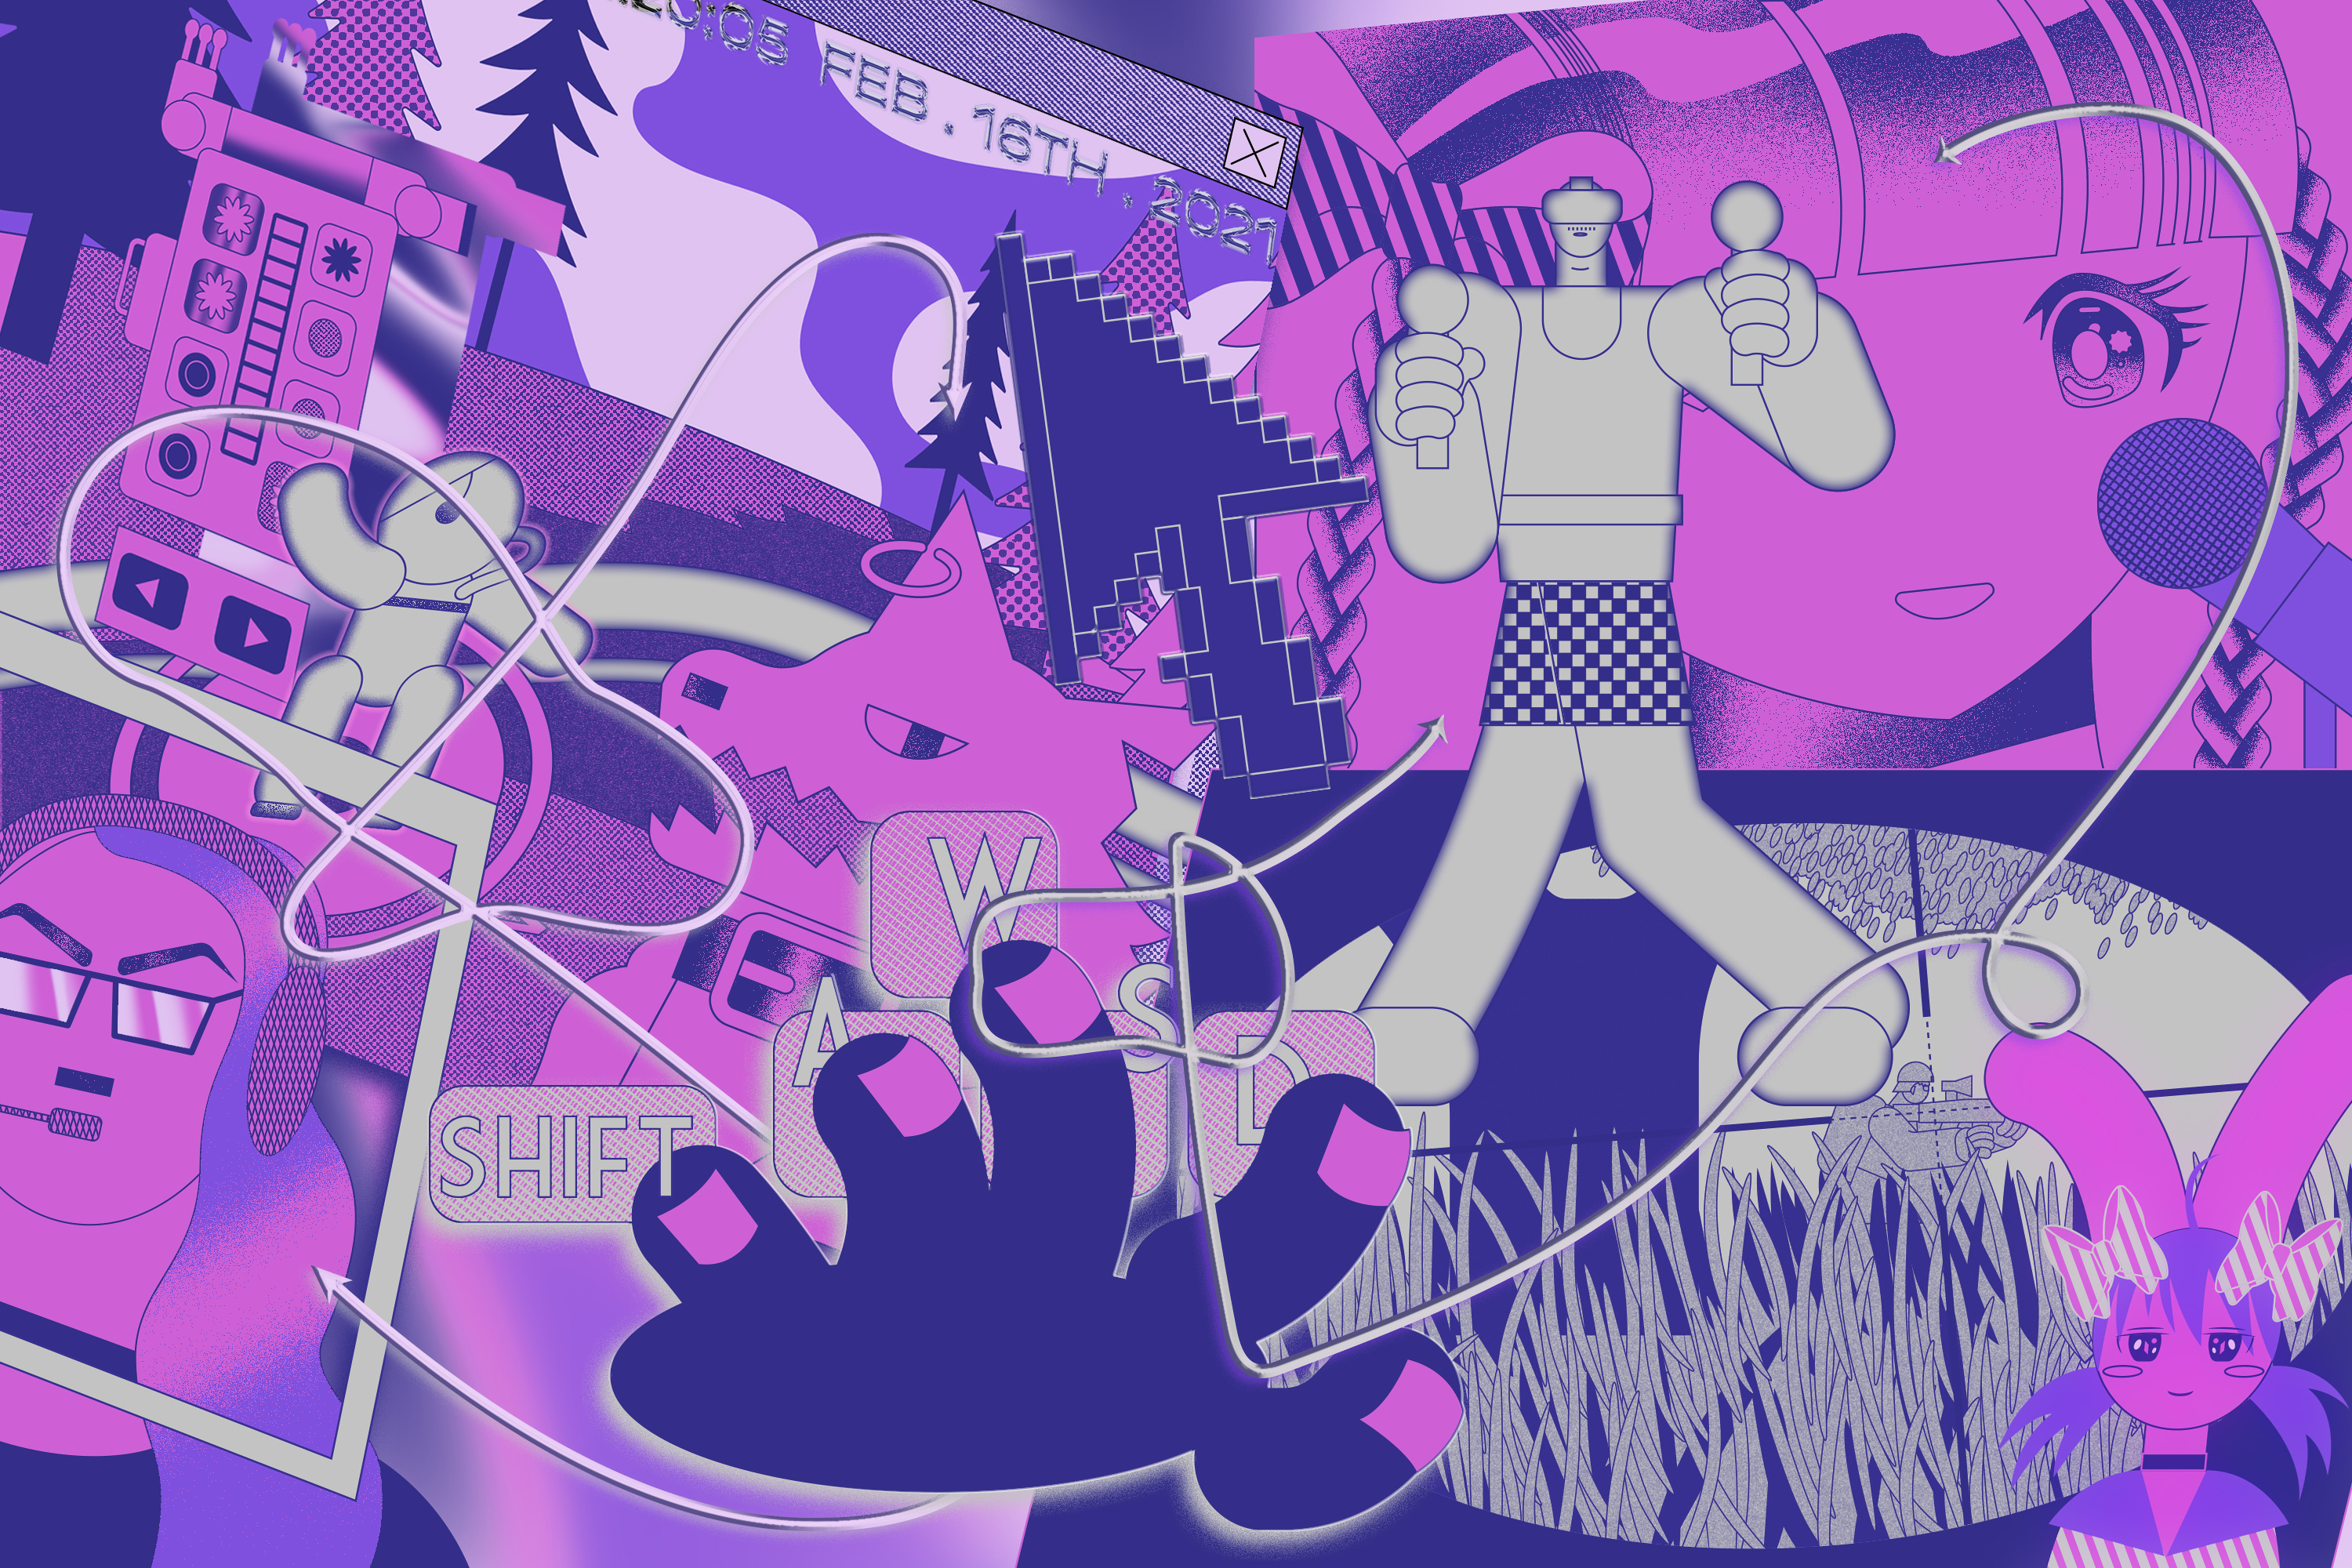 Abstract illustration featuring different tuber characters in pinks and purples